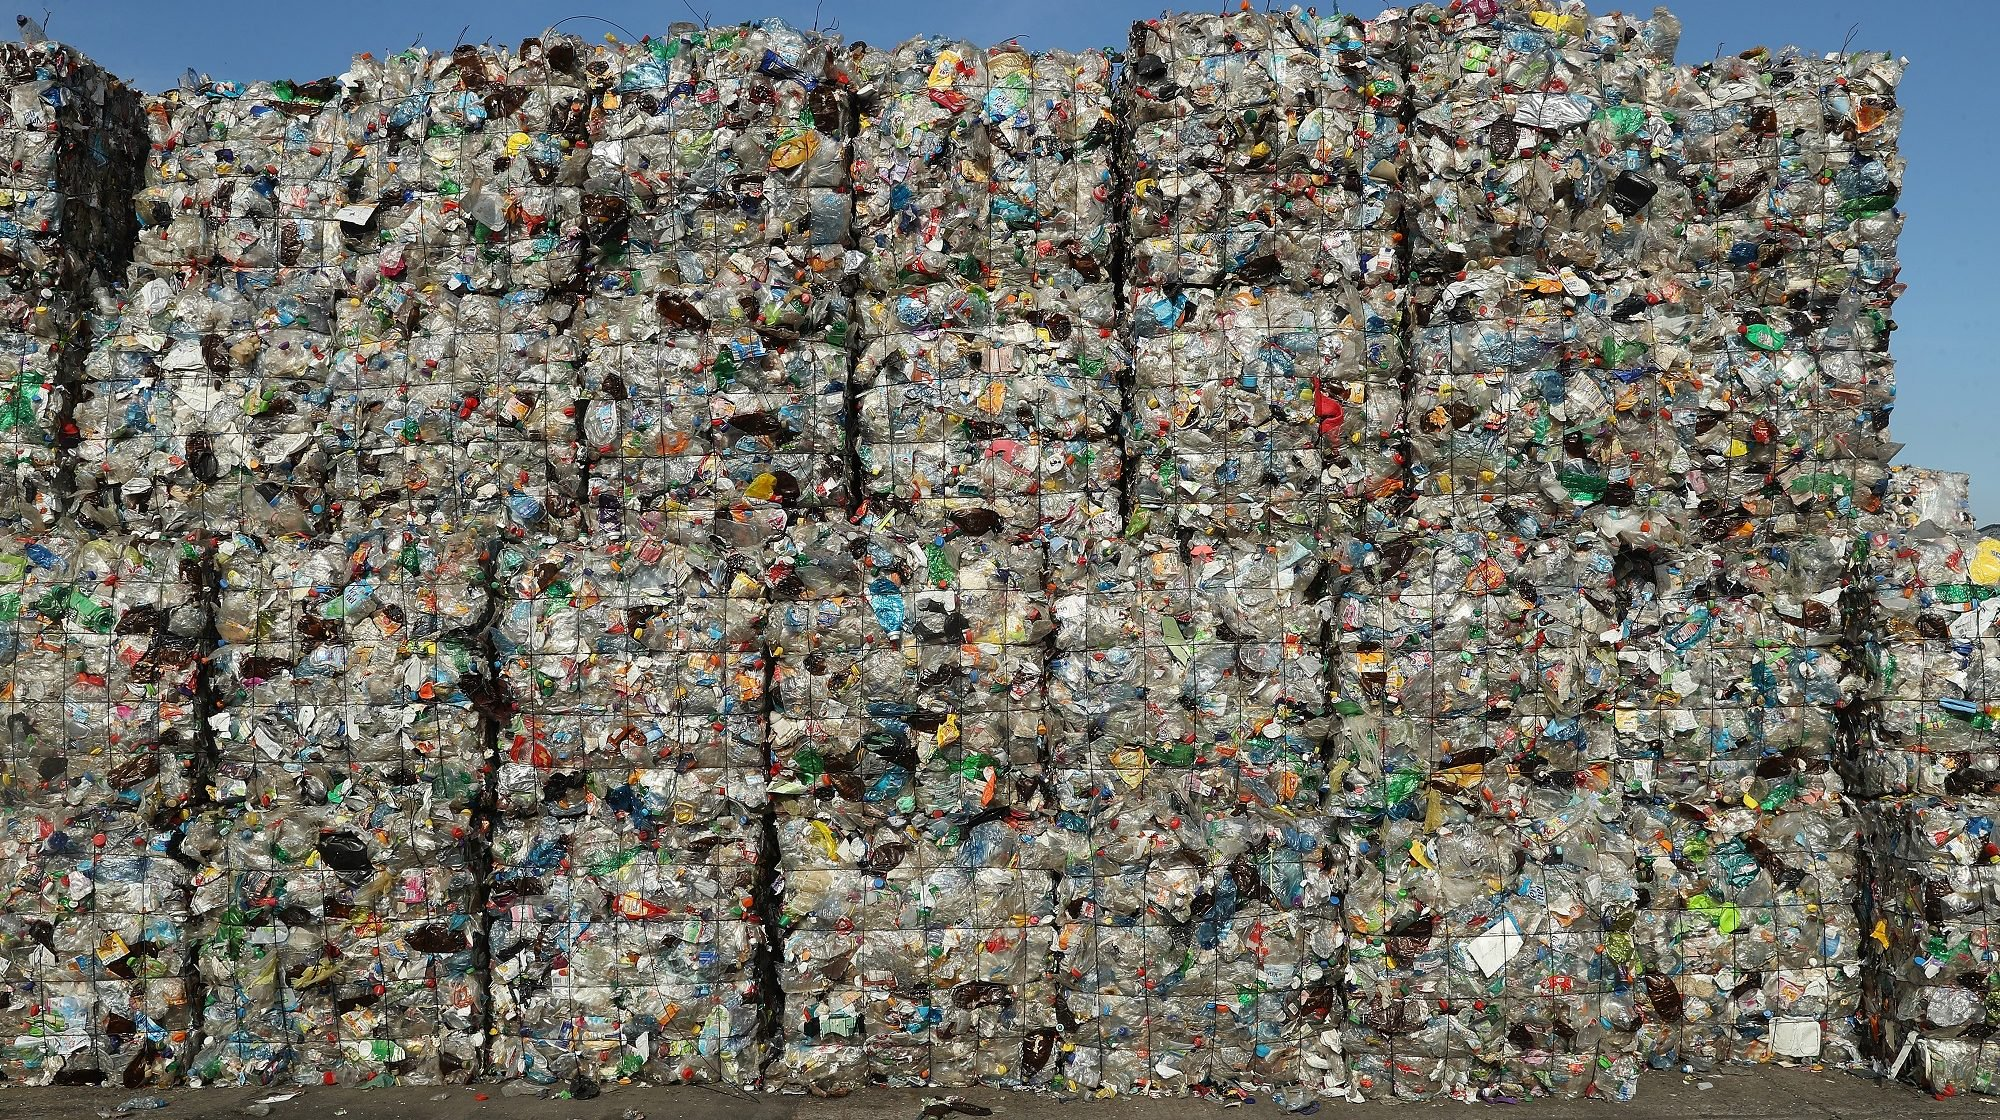 The Tipping Point: How China's waste ban made the world rethink its rubbish